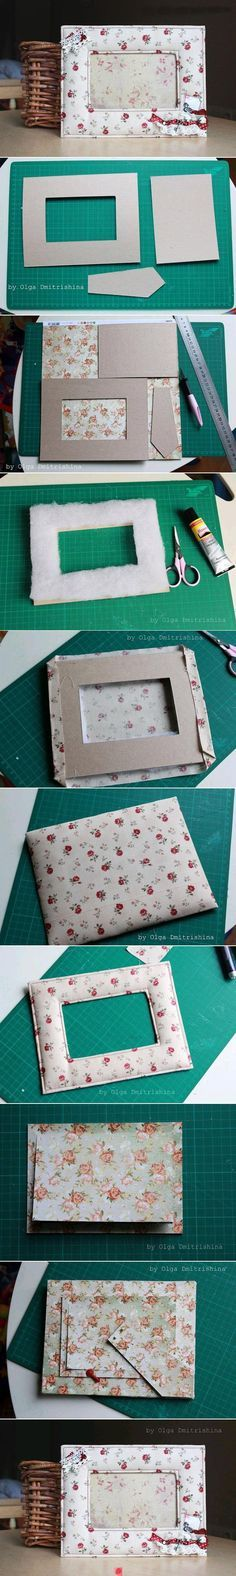 Beste DIY-Bilderrahmen und Bilderrahmen-Ideen - Nice Soft Photo Frame - How To M . Cadre Photo Diy, Diy Photo, Creative Crafts, Diy And Crafts, Decor Crafts, Diy Projects To Try, Craft Projects, Marco Diy, Fabric Crafts